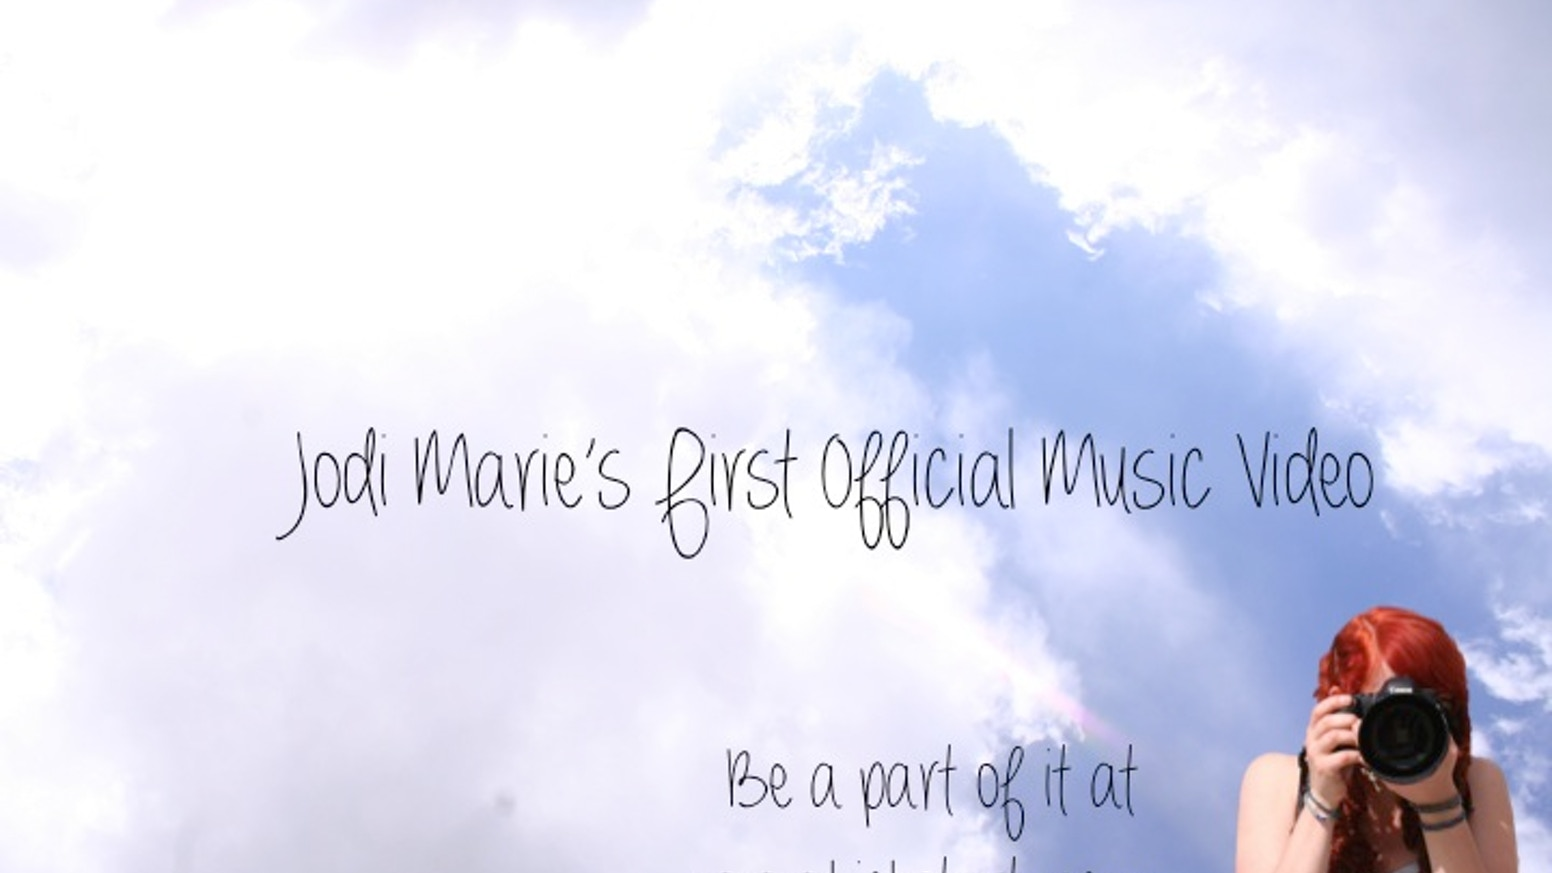 Jodi Marie's First Official Music Video by Jodi Marie Fisher